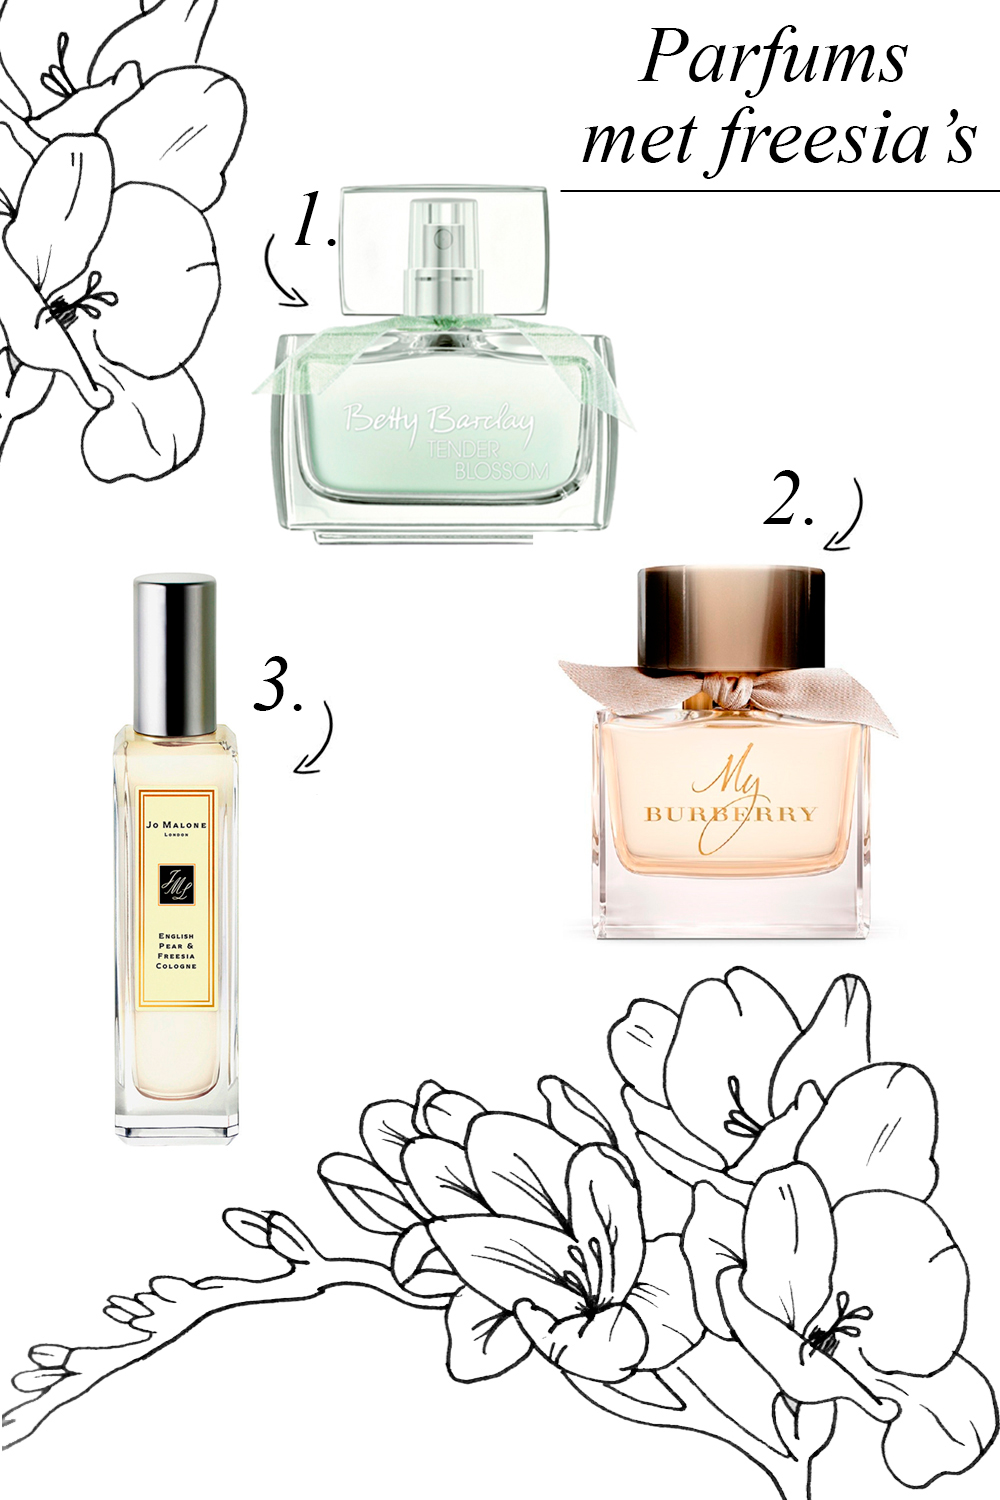 Parfums met freesia